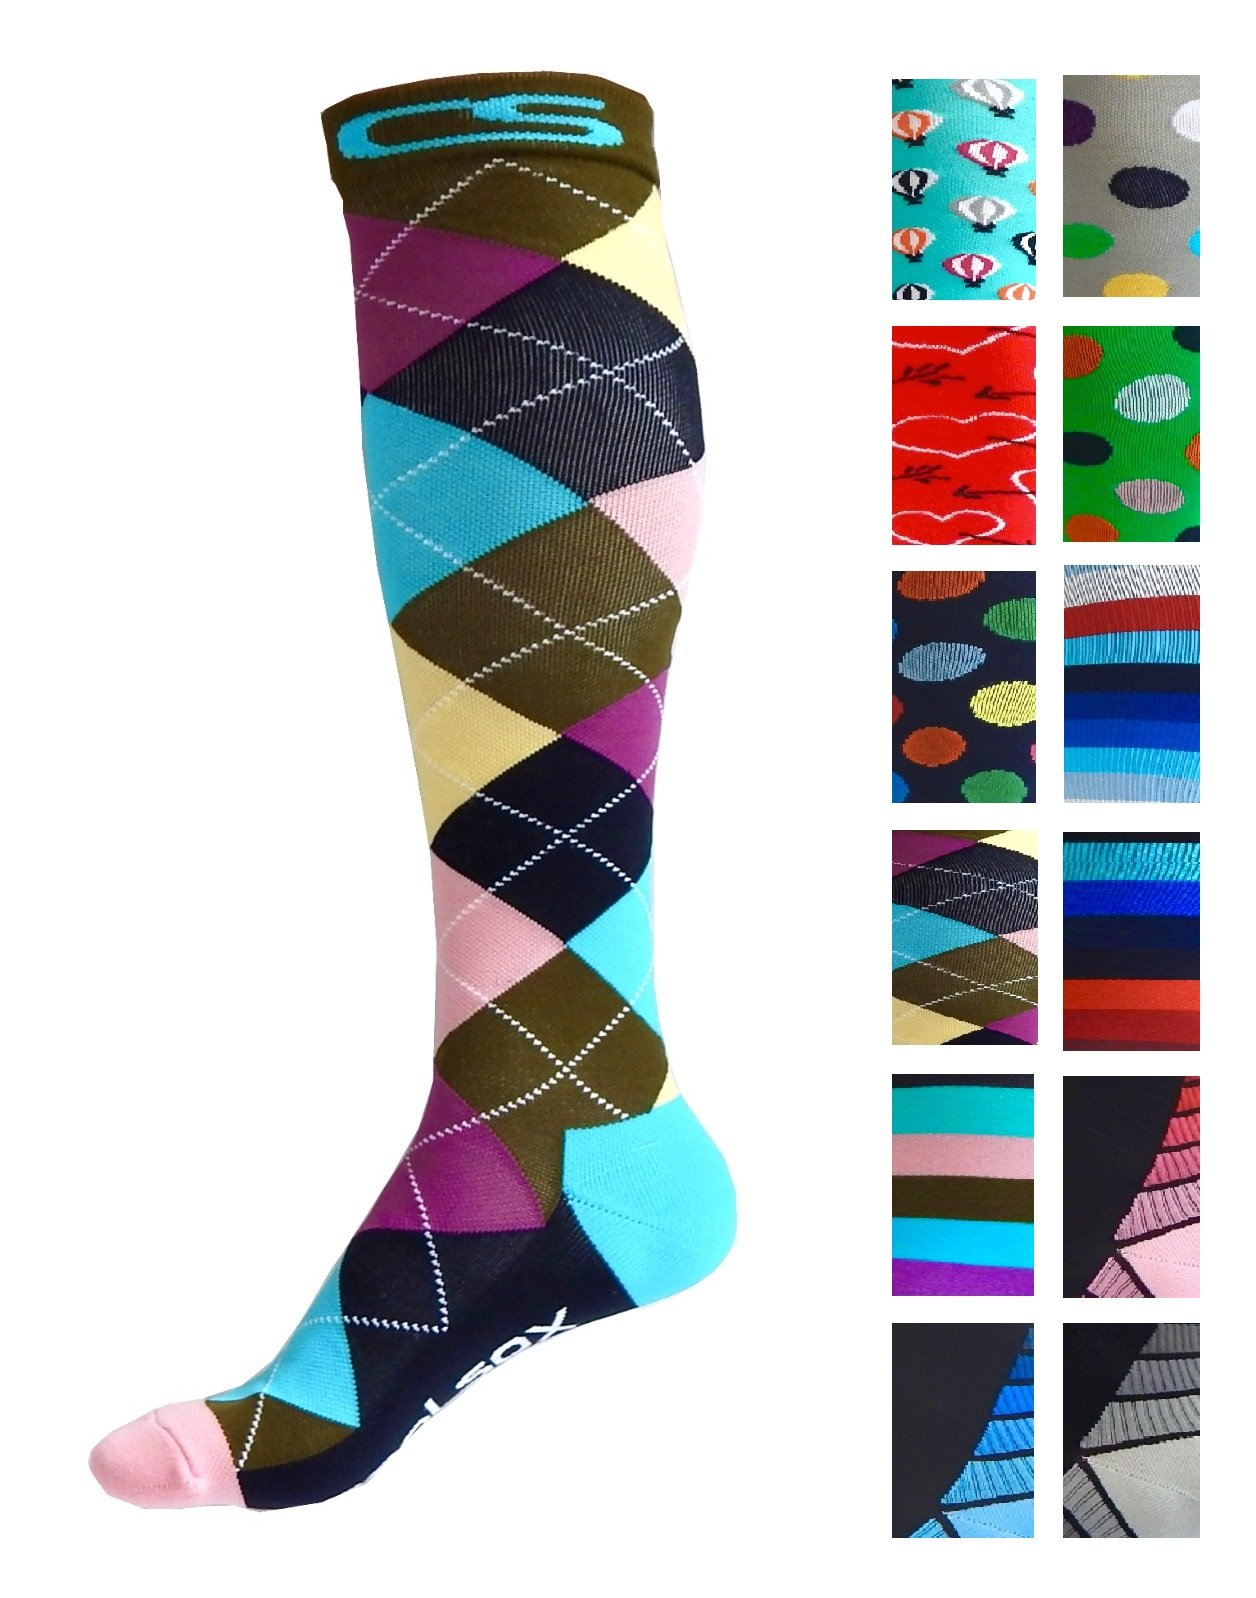 Compression Socks for Men & Women - BEST Graduated Athletic Fit for Running, Nurses, Shin Splints, Flight Travel, Maternity Pregnancy - Boost Stamina, Circulation & Recovery (Cool Argyle, S/M)